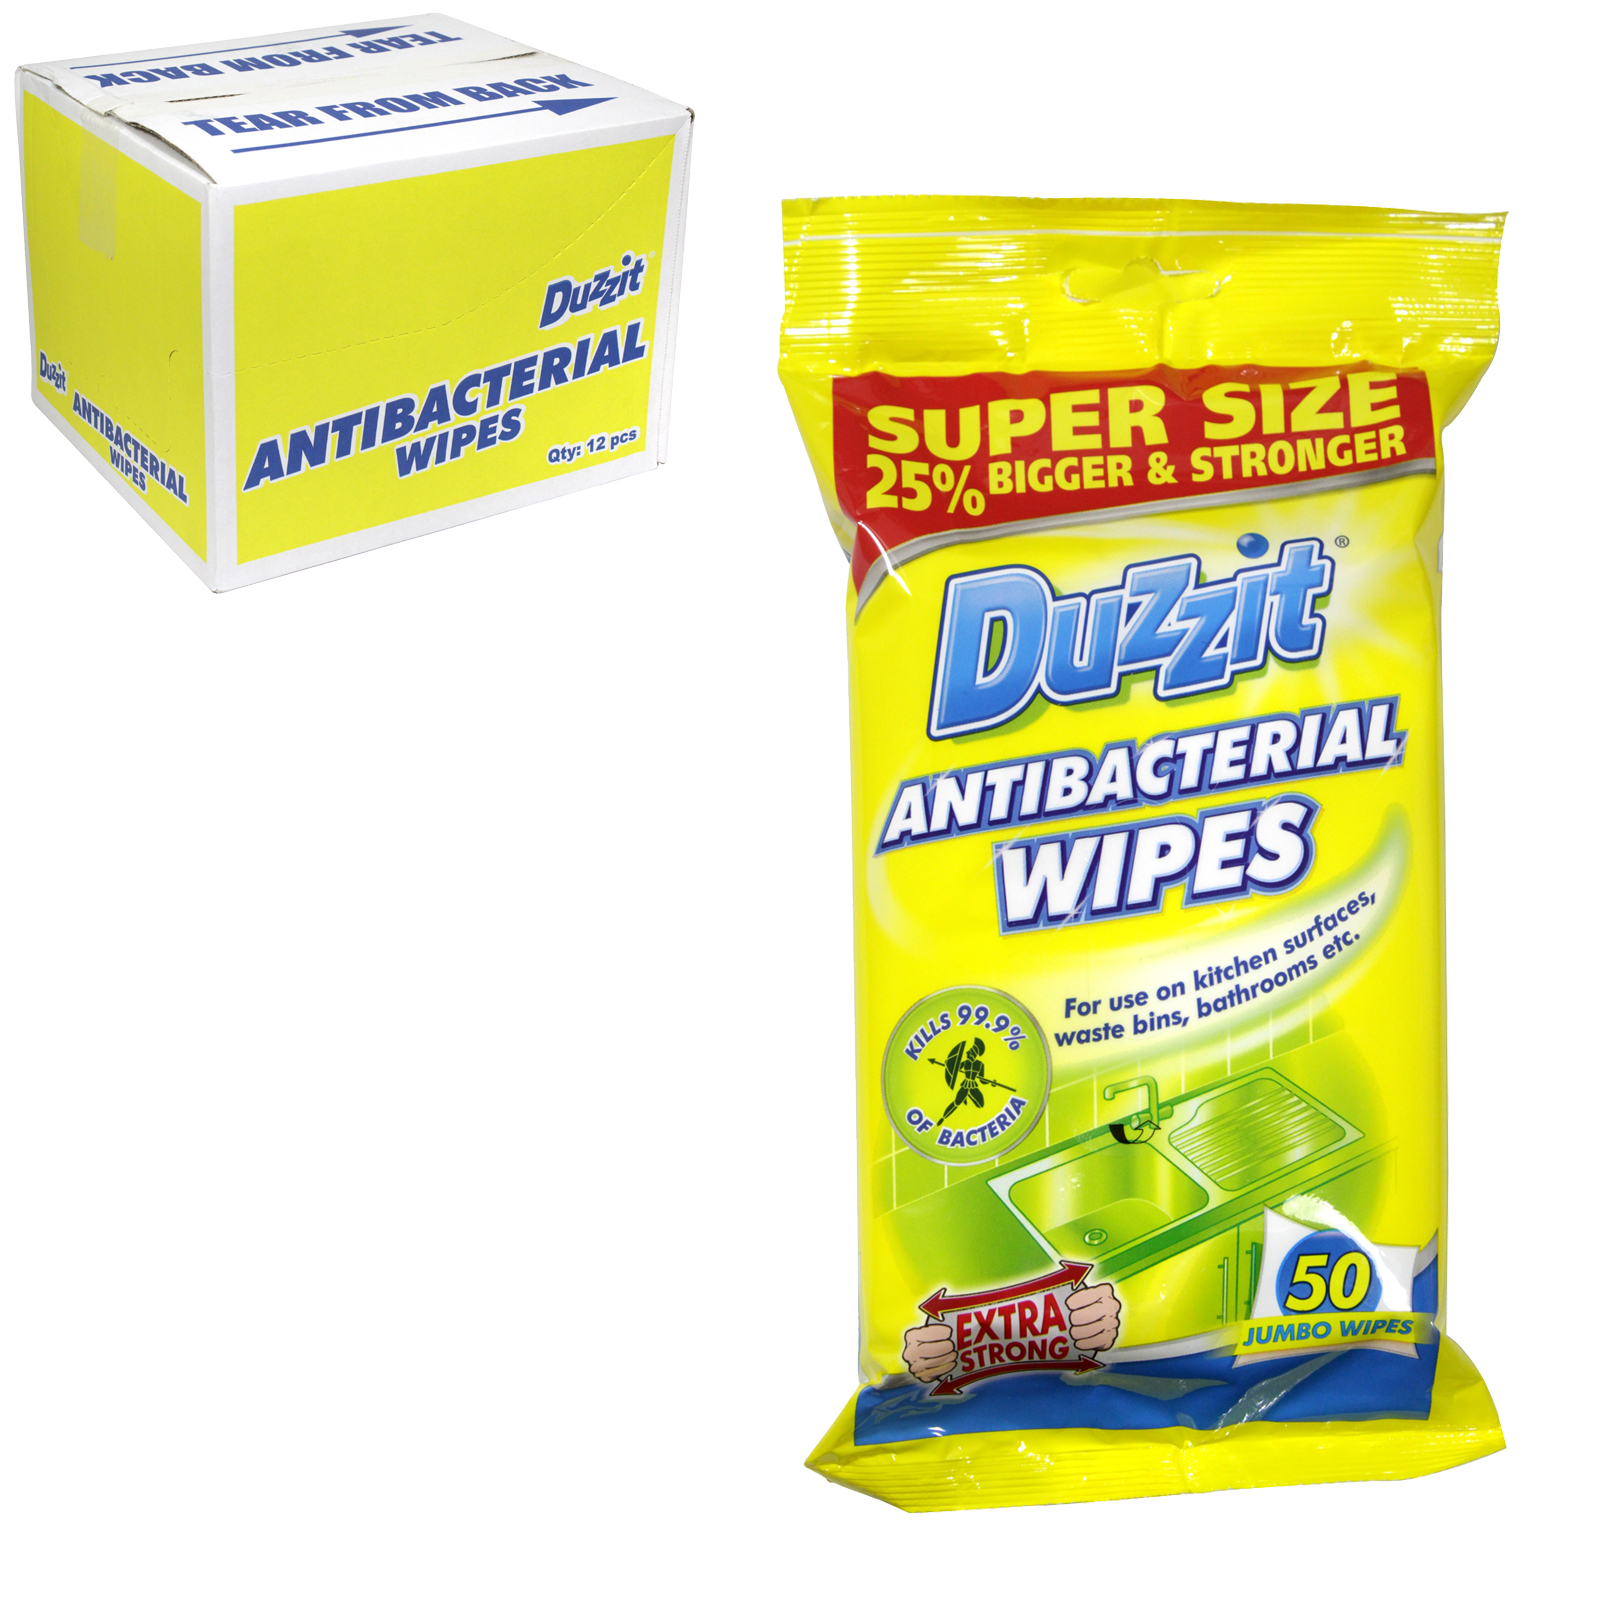 DUZZIT ANTI-BAC WIPES 50 JUMBO WIPES X12